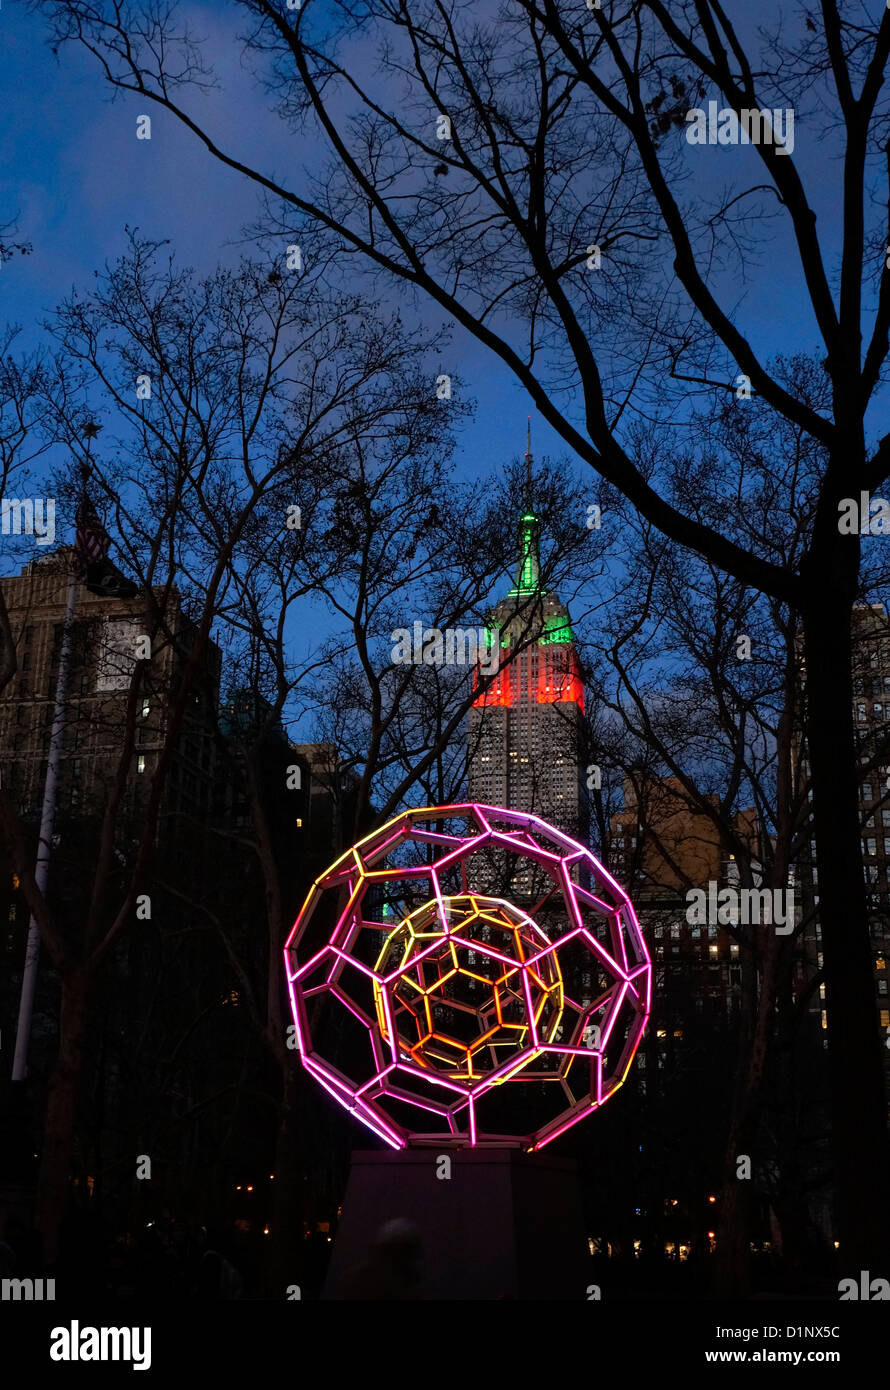 Leo Villareal sculpture 'Buckyball' in Madison Square Park in New York City at Christmas. - Stock Image